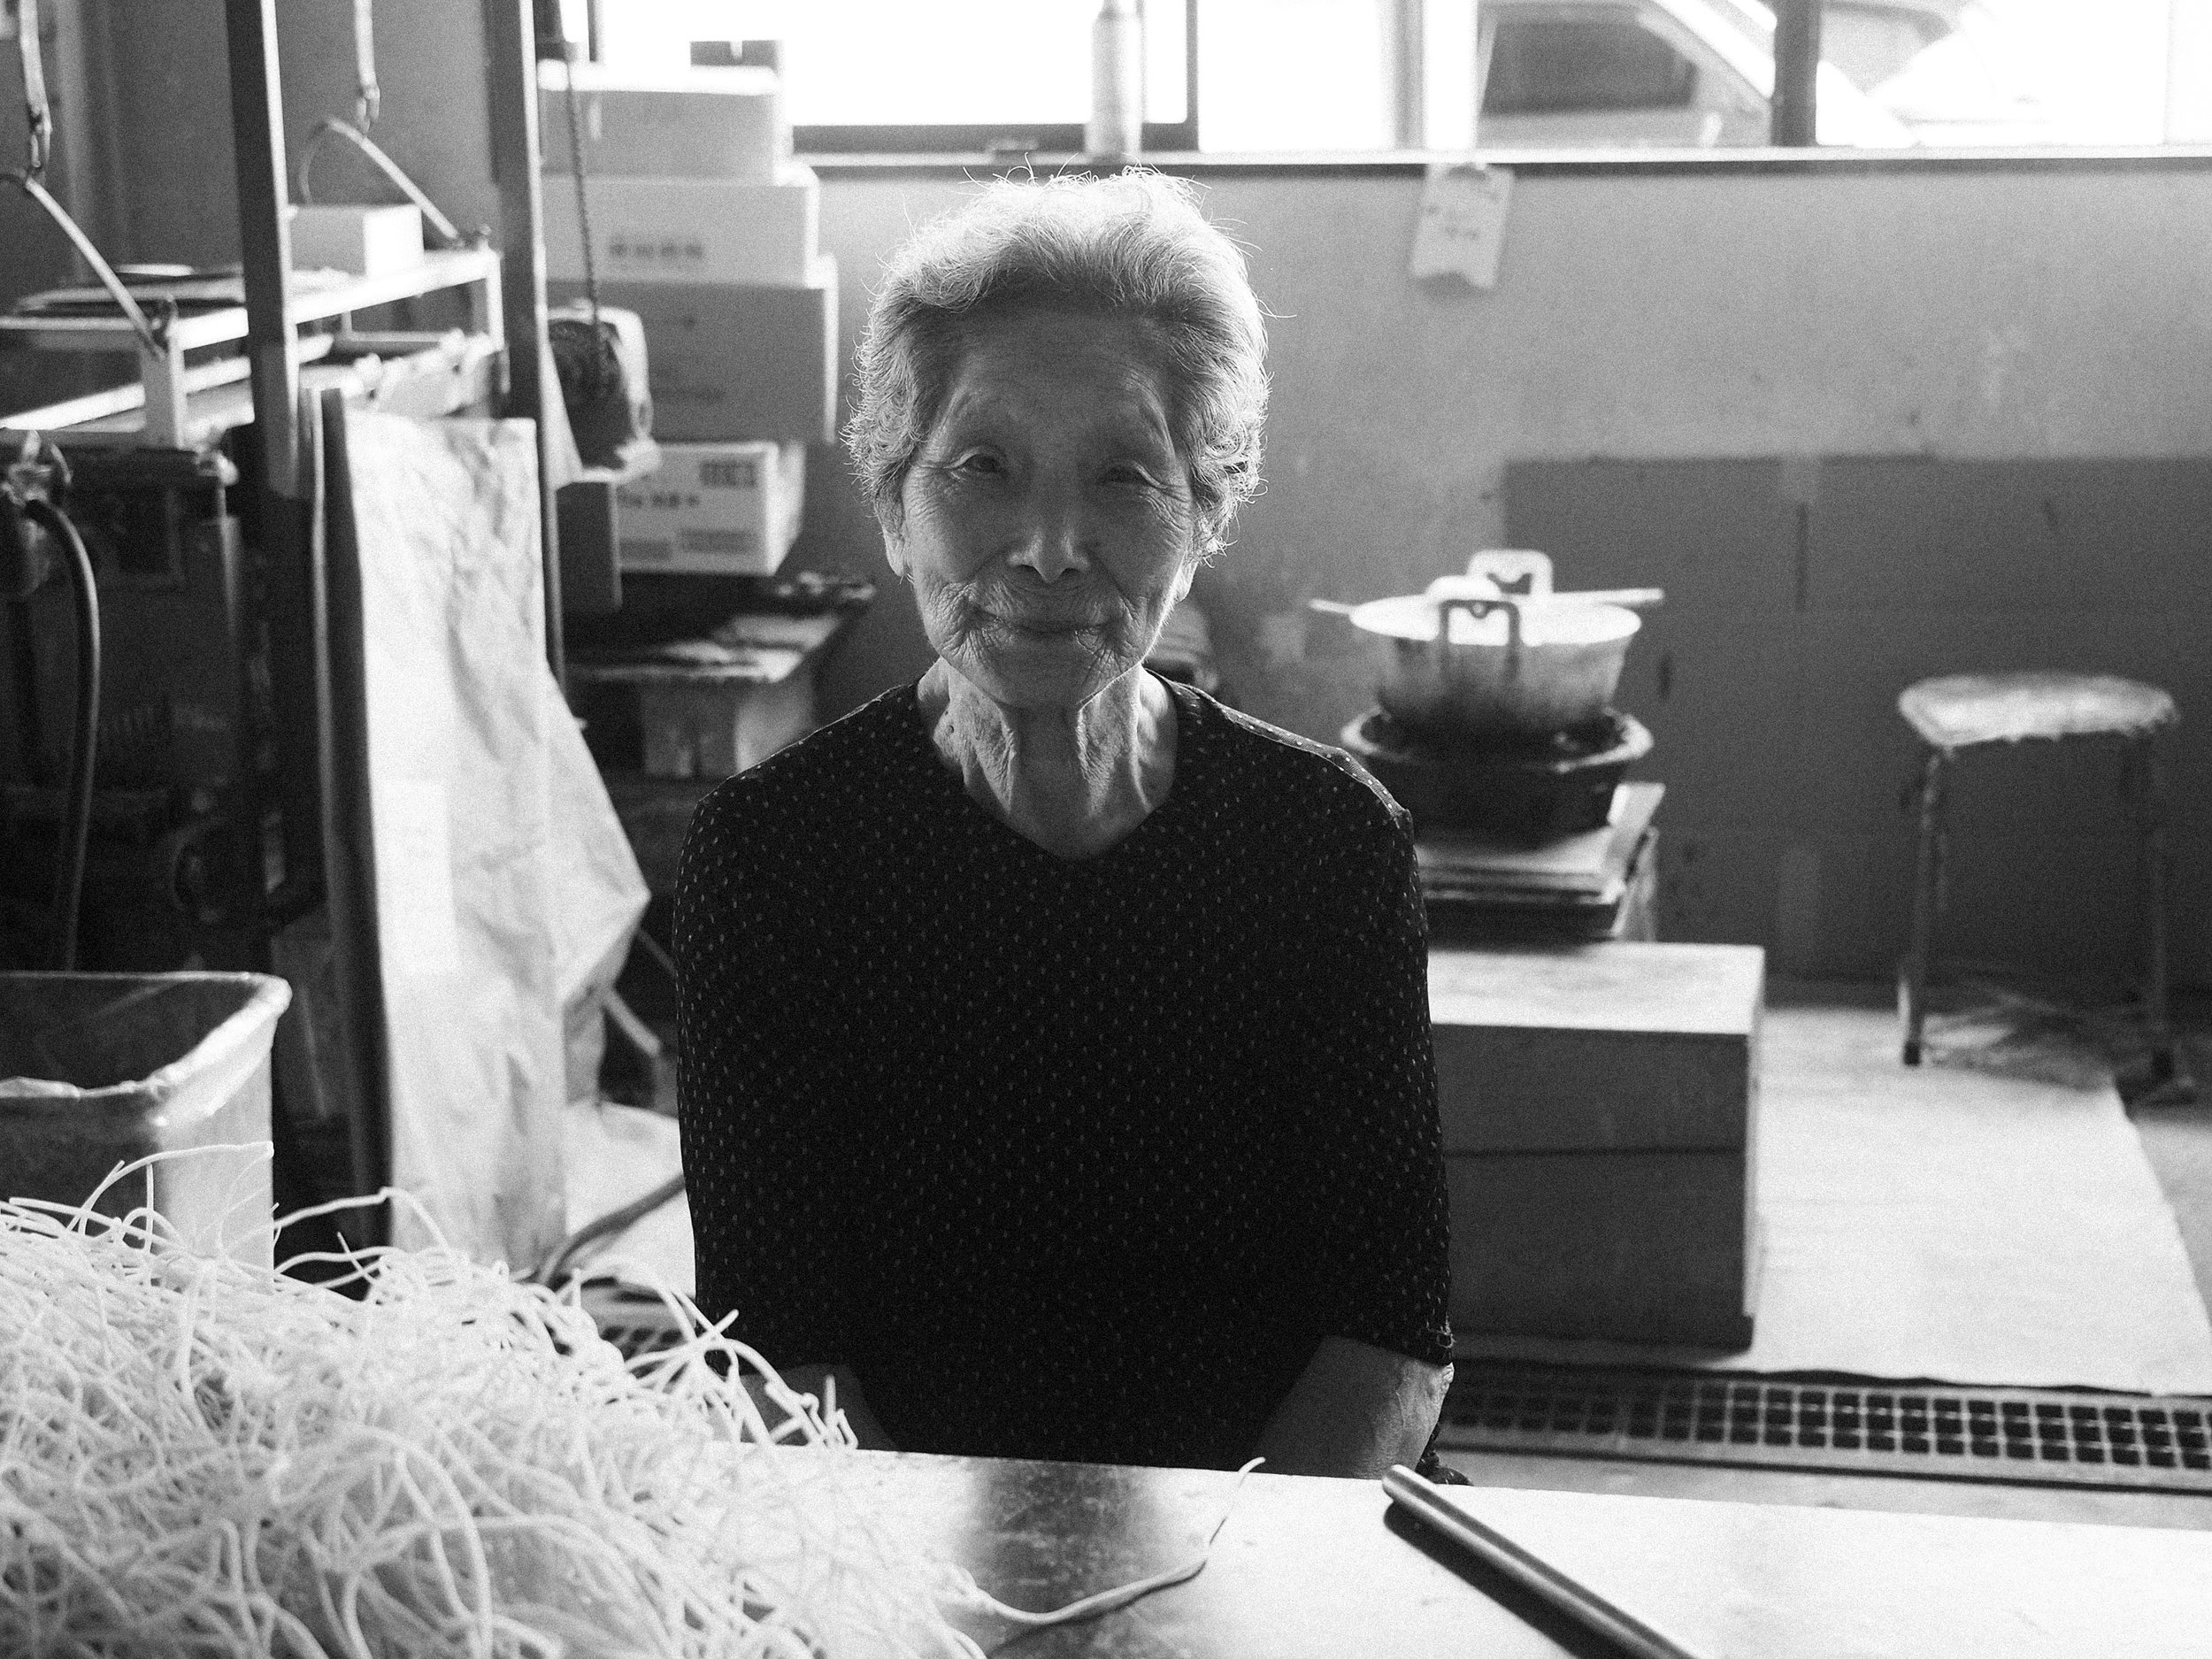 Satoshi's 92 year old grandmother, Miyo still works in the factory hand rolling the wicks usingrush cone (plant used for a tatami mat) wrapped around washi (Japanese paper).